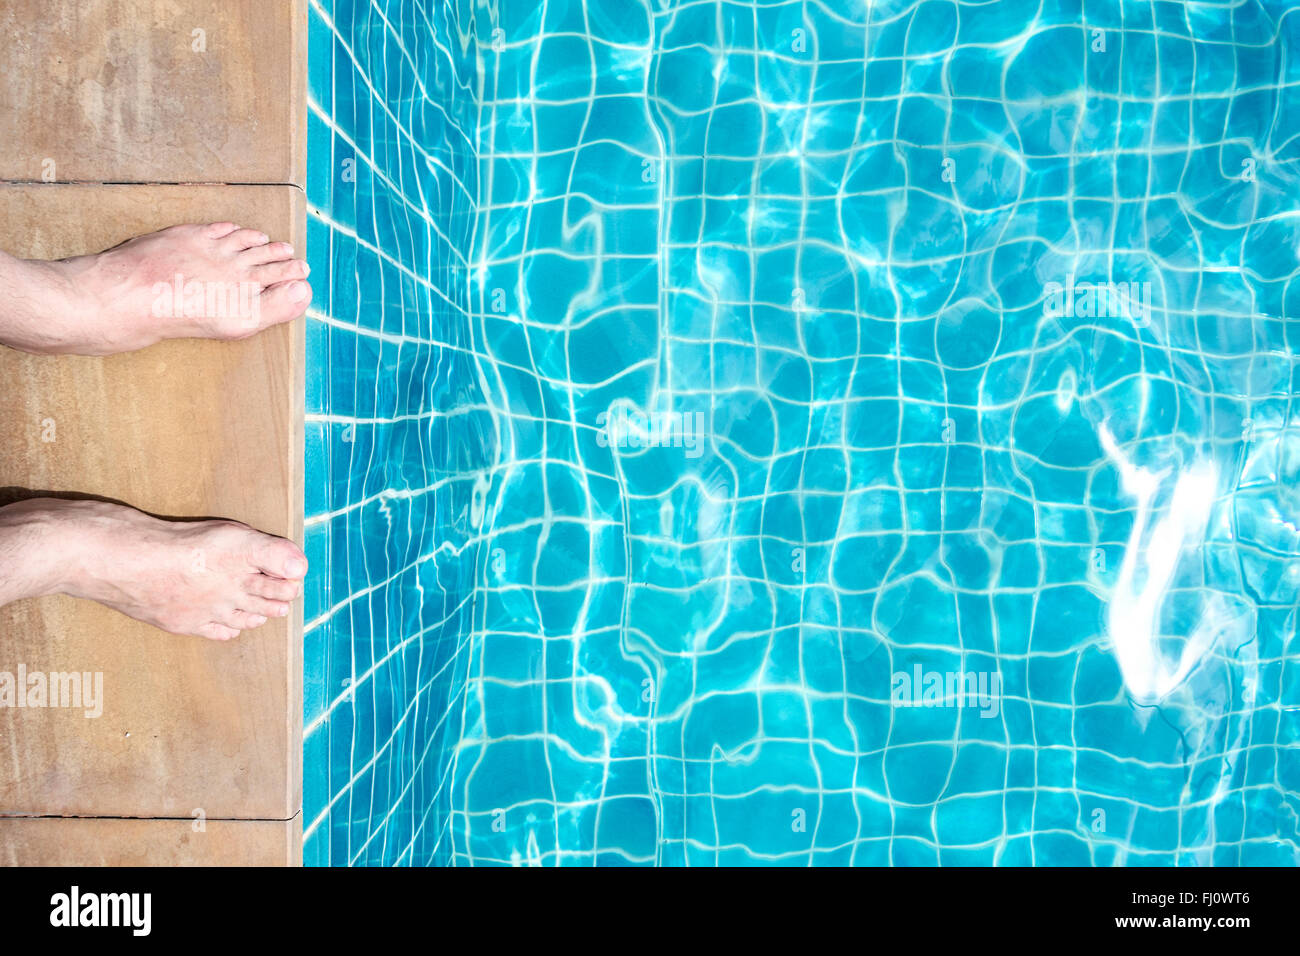 Feet of a man at pool edge - Stock Image